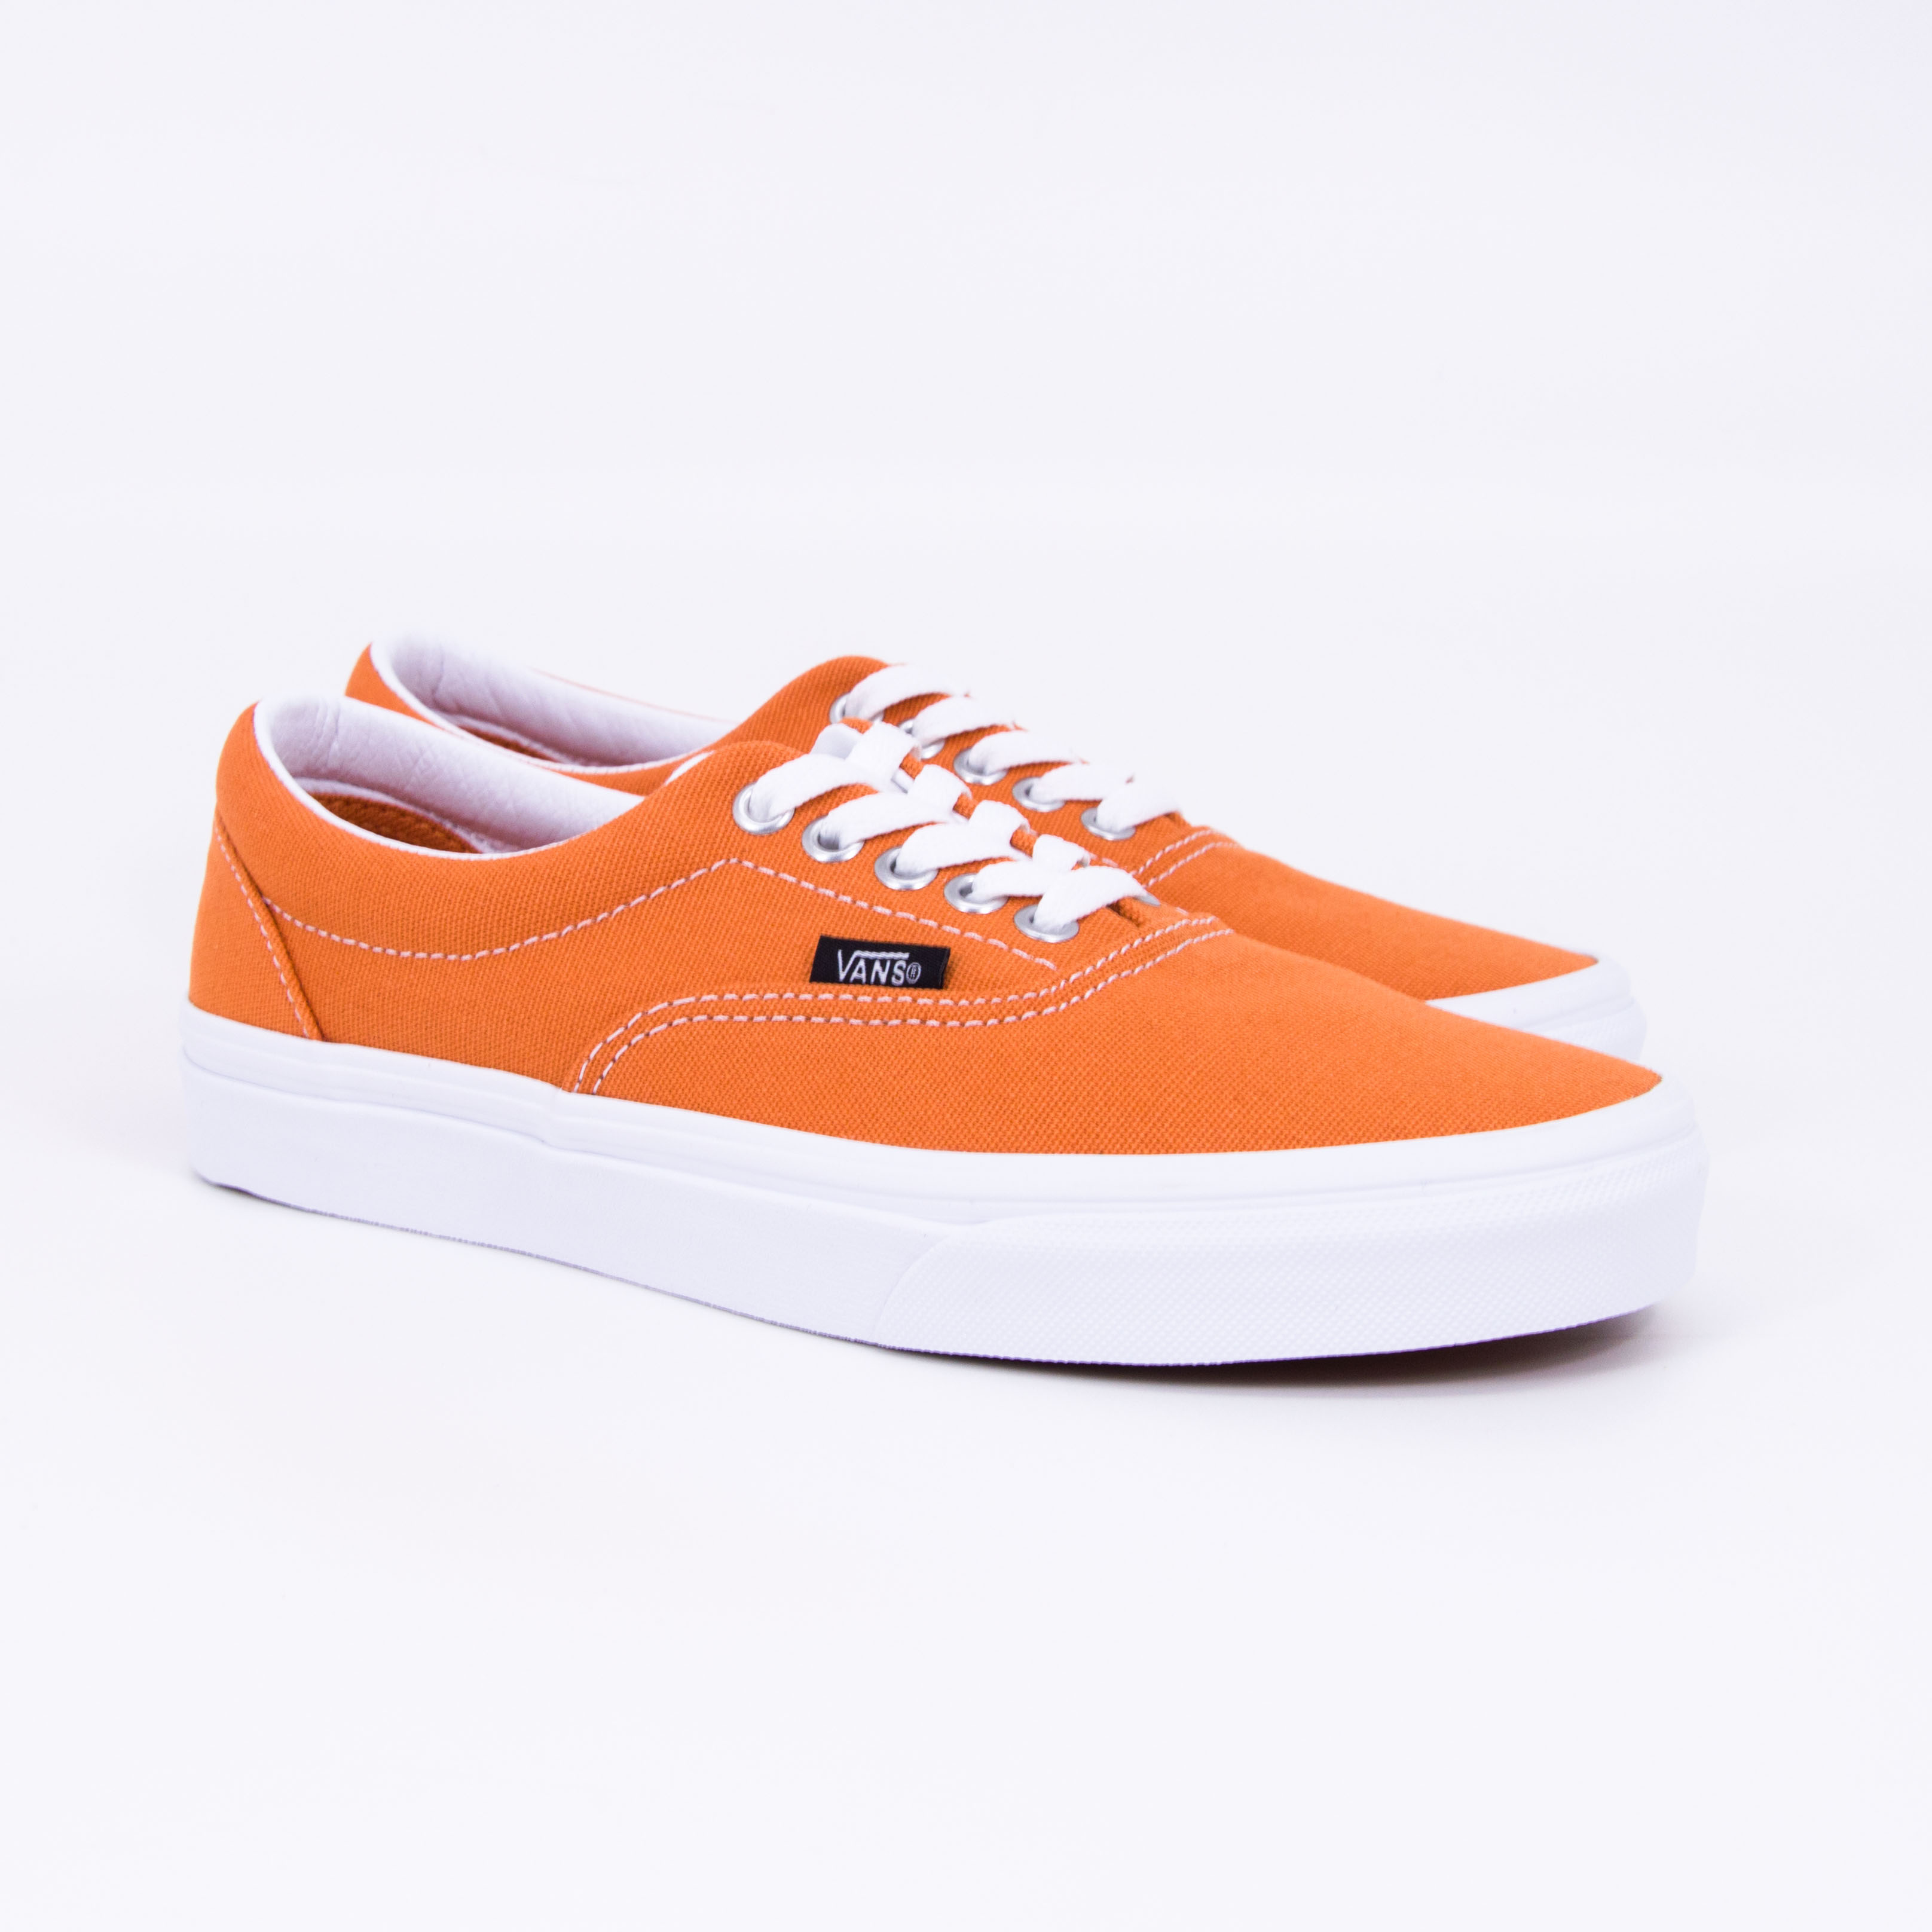 Vans - ERA - Retro Sport Apricot/True White